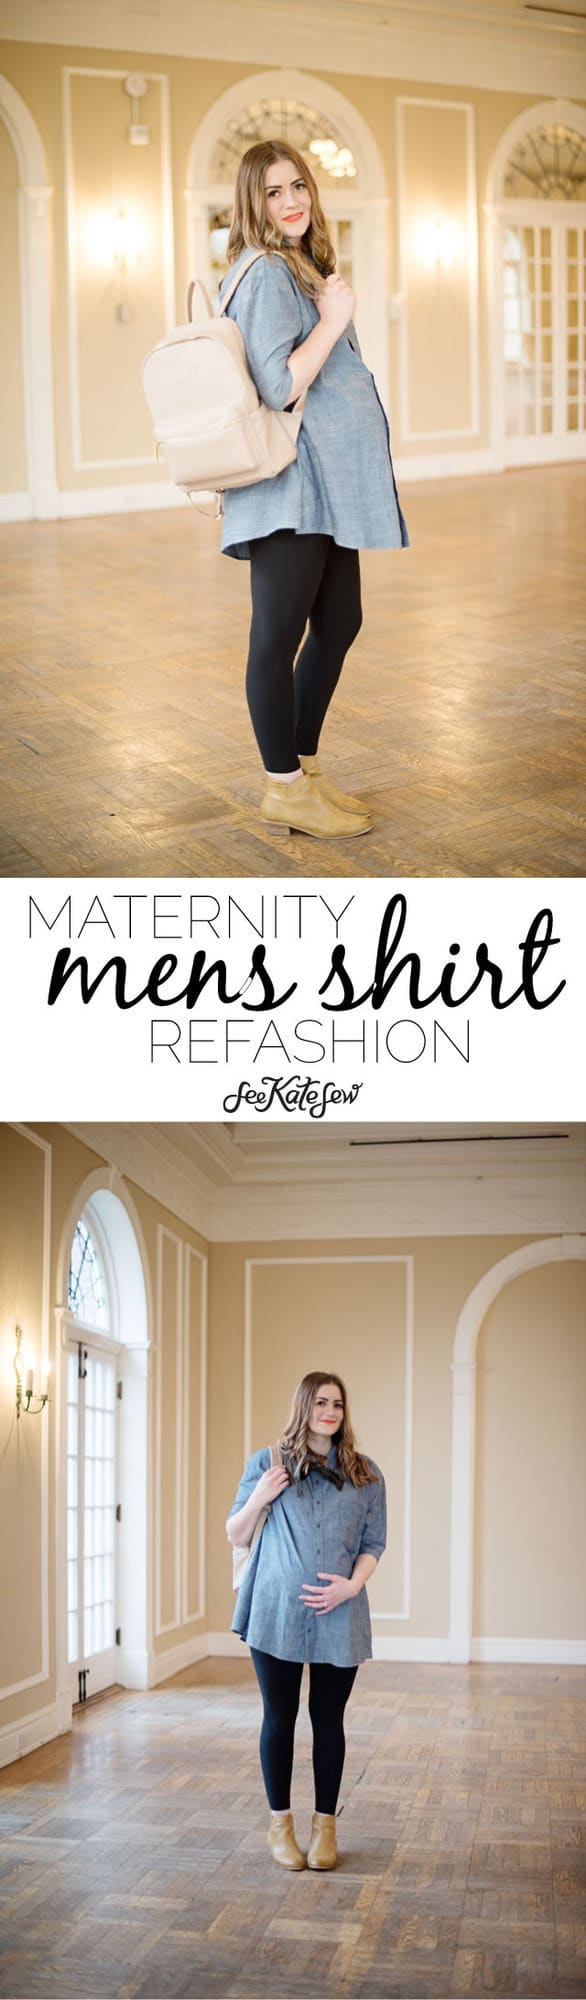 Men's Shirt Maternity Refashion with Ryla Pack! | how to refashion a men's shirt | easy diy maternity shirt | maternity refashion sewing patterns | pregnancy refashion | maternity shirt tutorials || see Kate sew #maternityrefashion #shirtrefashion #diymaternity